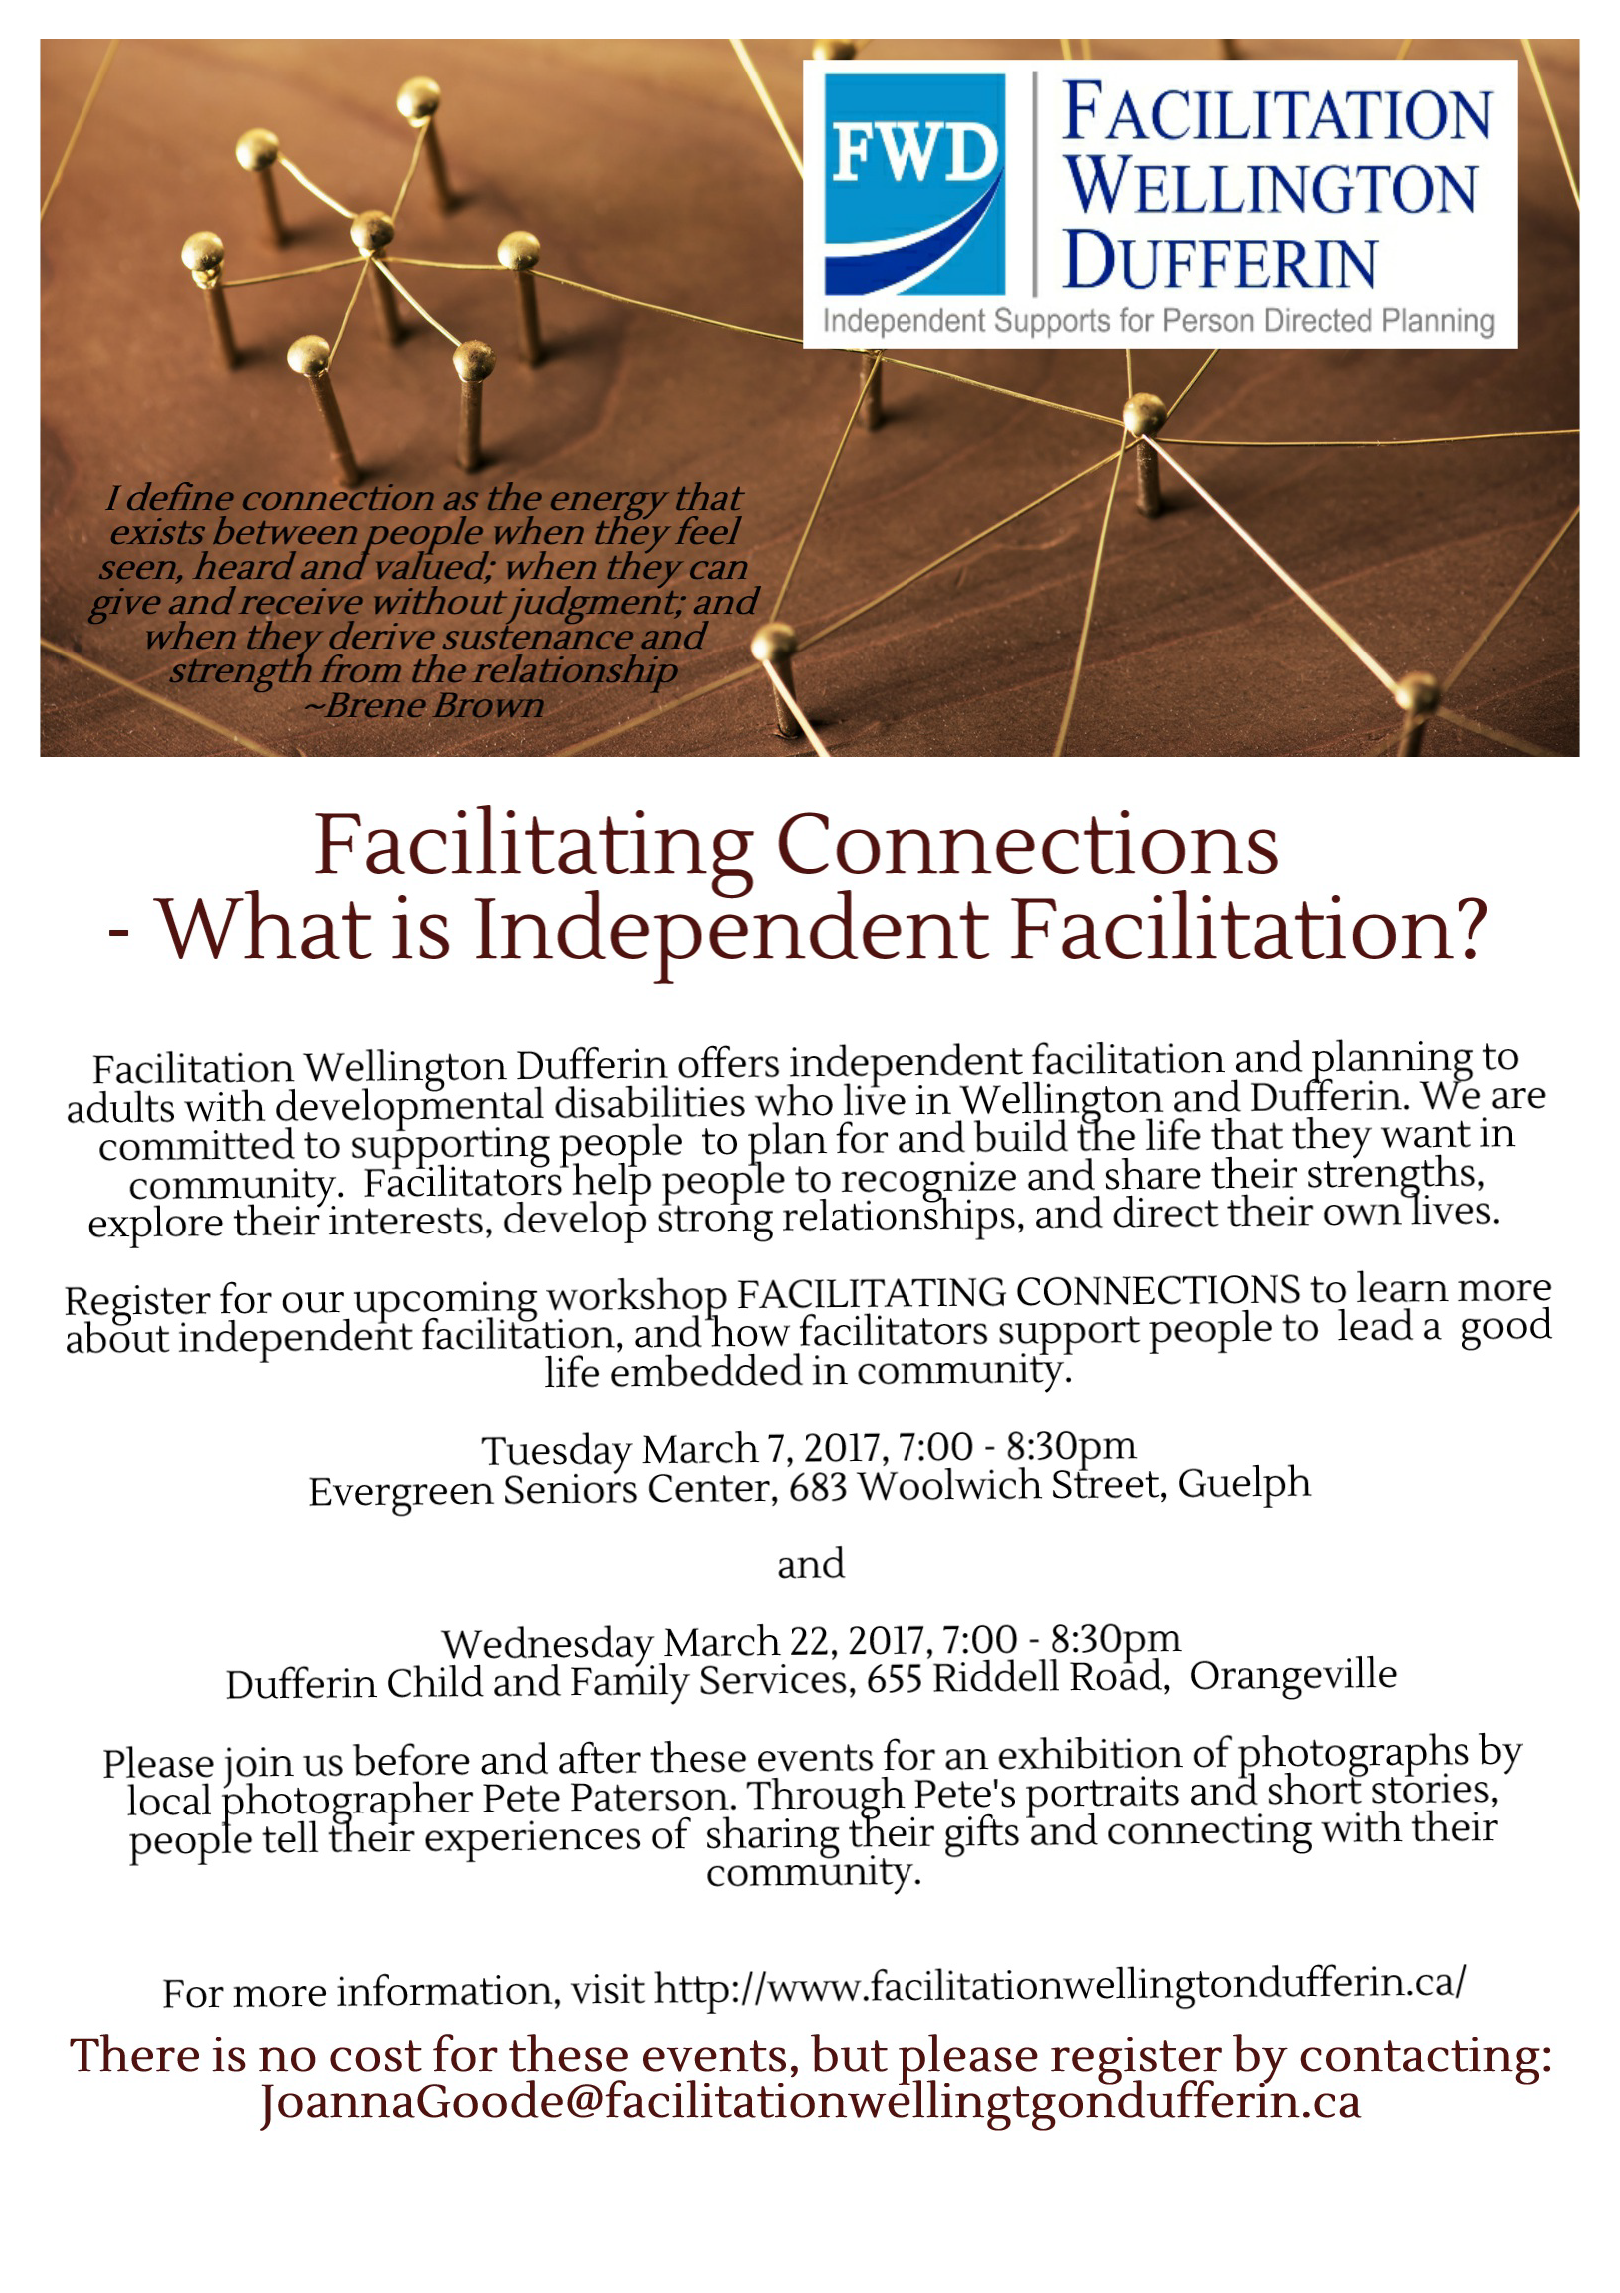 Facilitating Connections Flyer